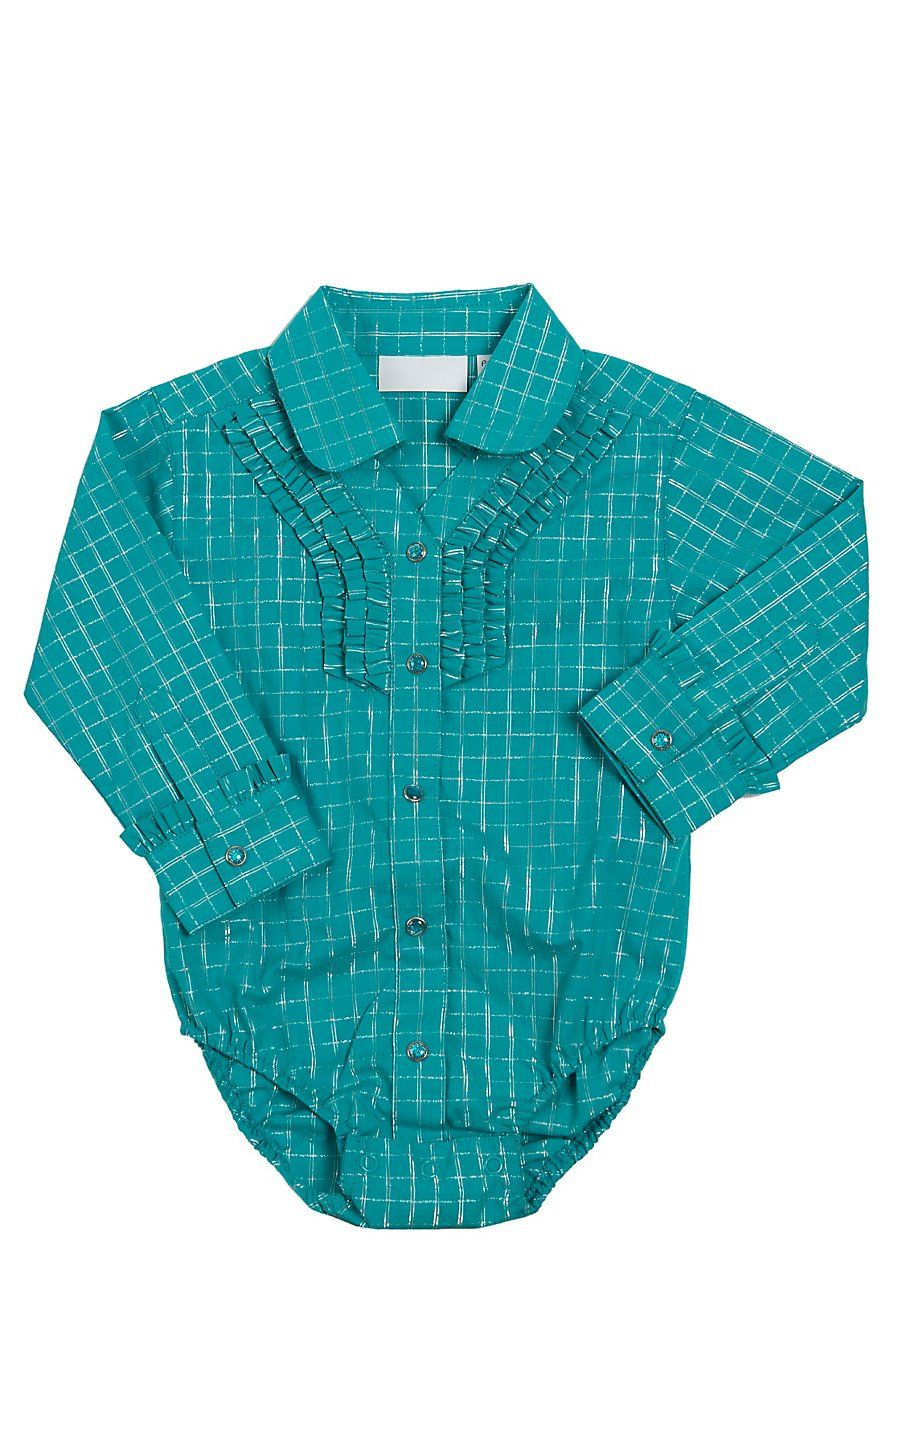 b22140b39 All Around Baby by Wrangler Girl's Turquoise with Silver Lurex Check  Bodysuit Western Baby Clothes,